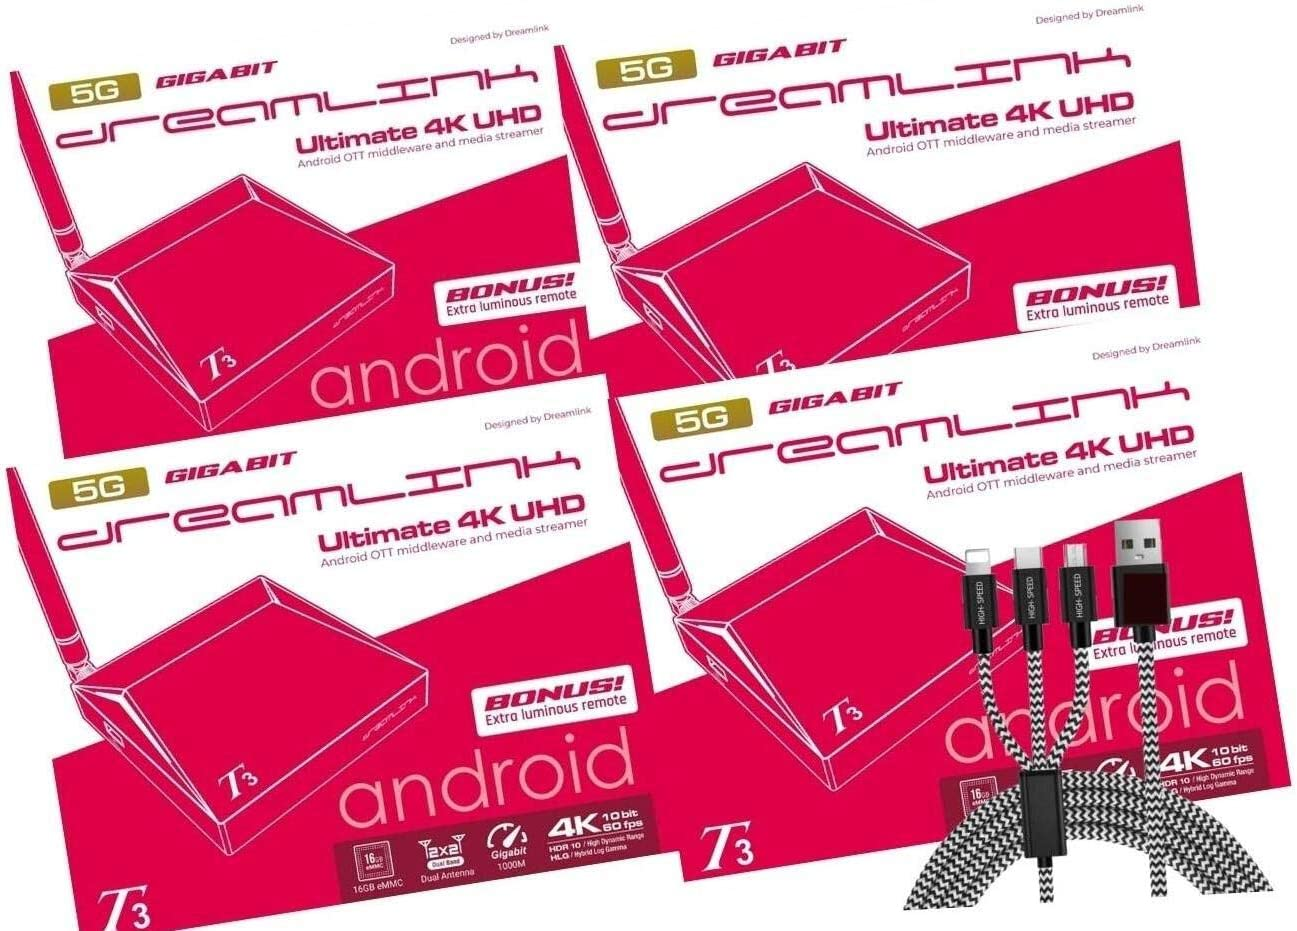 { Package of 4 } Dreamlink T3 Band Gigabit Max 45% OFF 5G Japan Maker New Android Dual 2 LAN